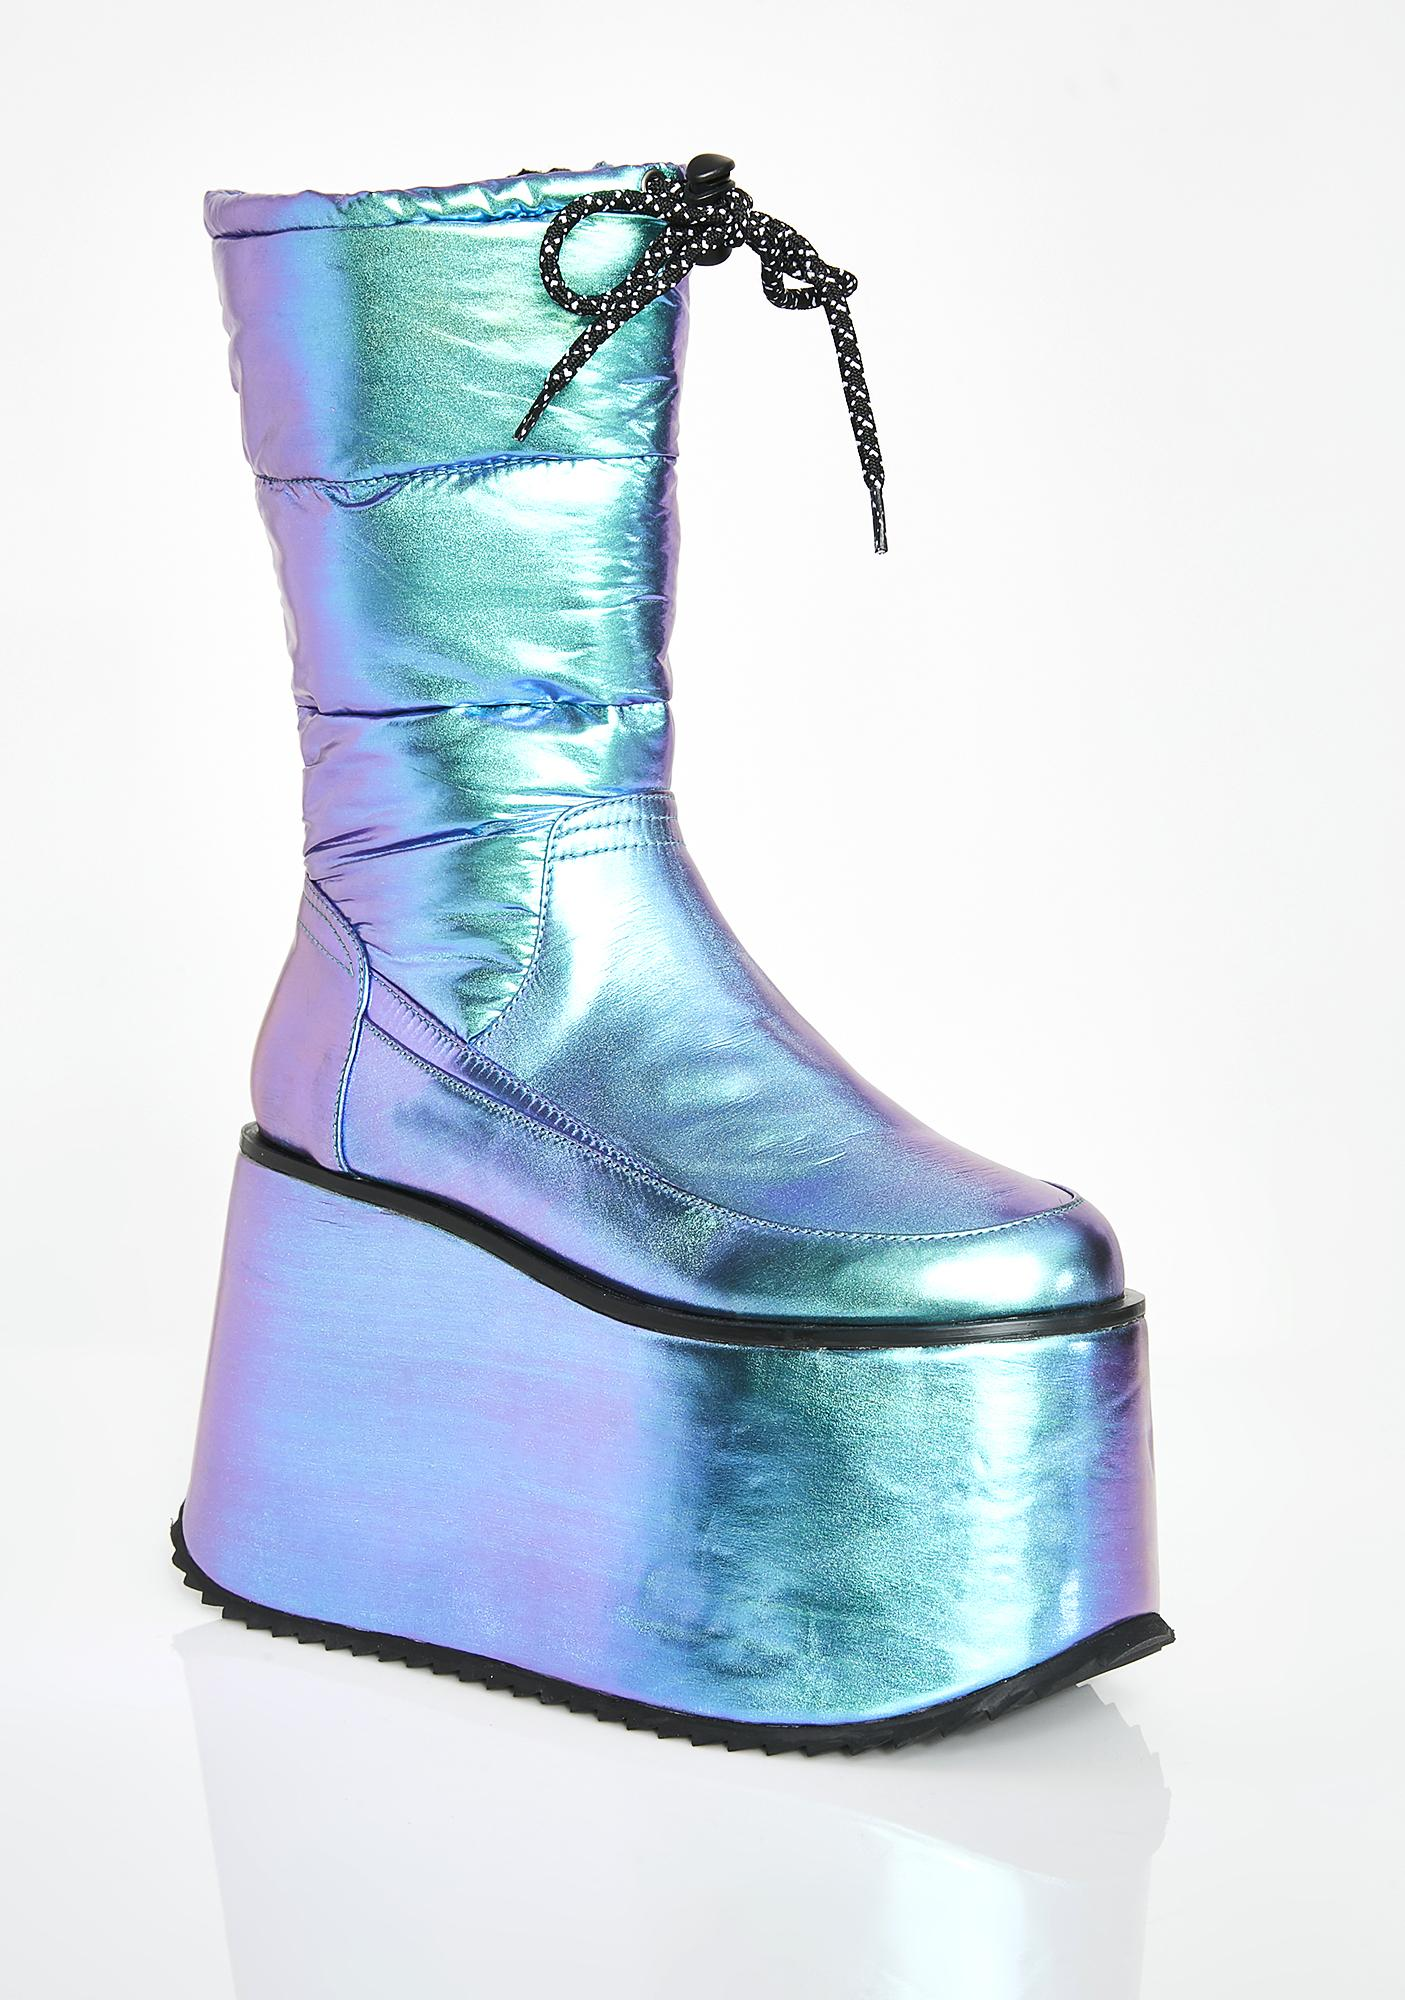 Club Exx Abominable Snowbabe Puffer Boots